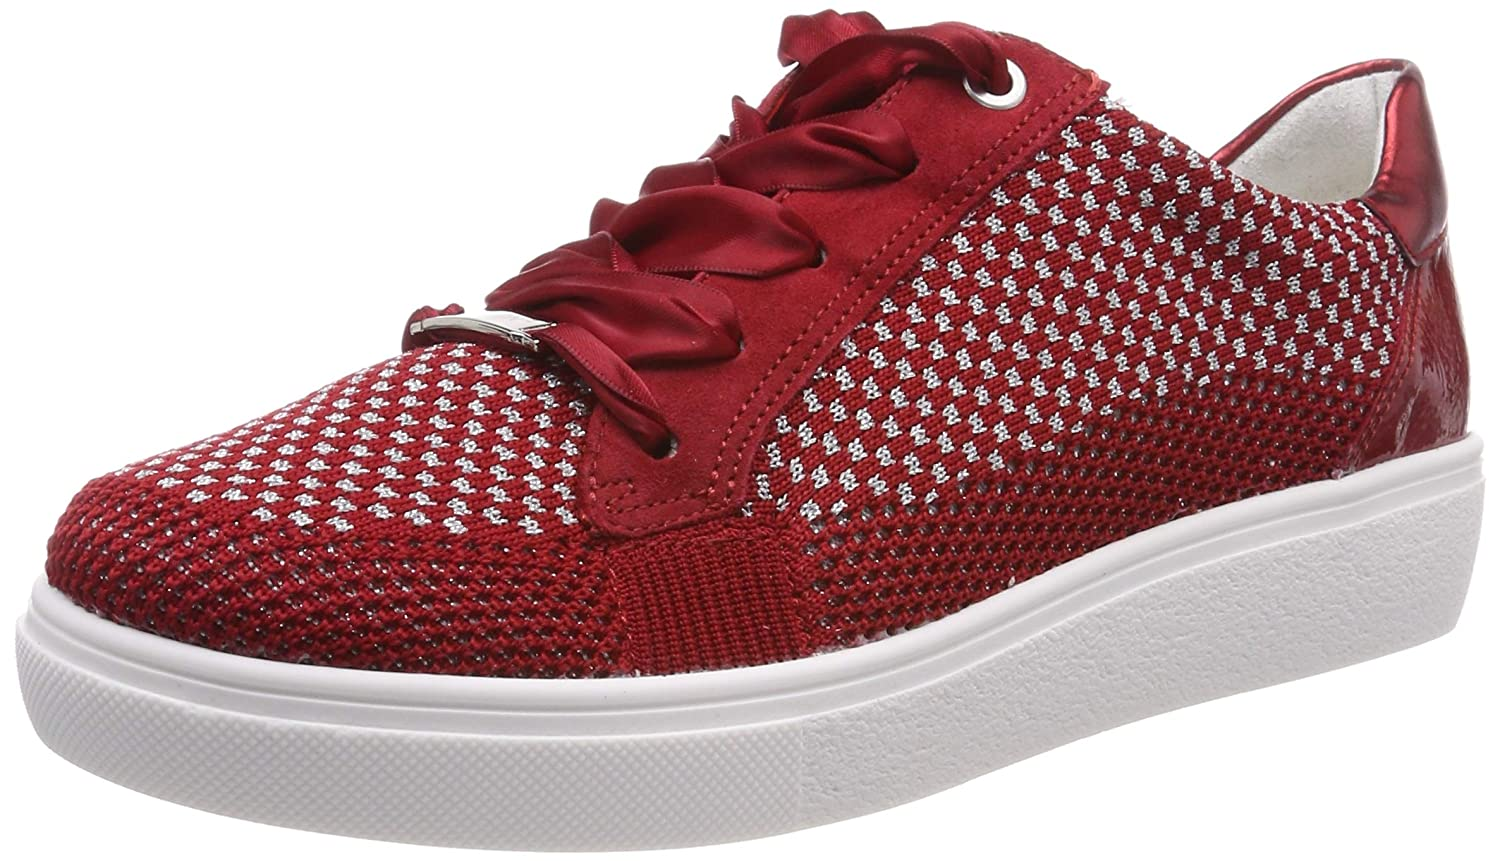 ARA Damen 1214582 New York 1214582 Damen Turnschuhe 6c0a24